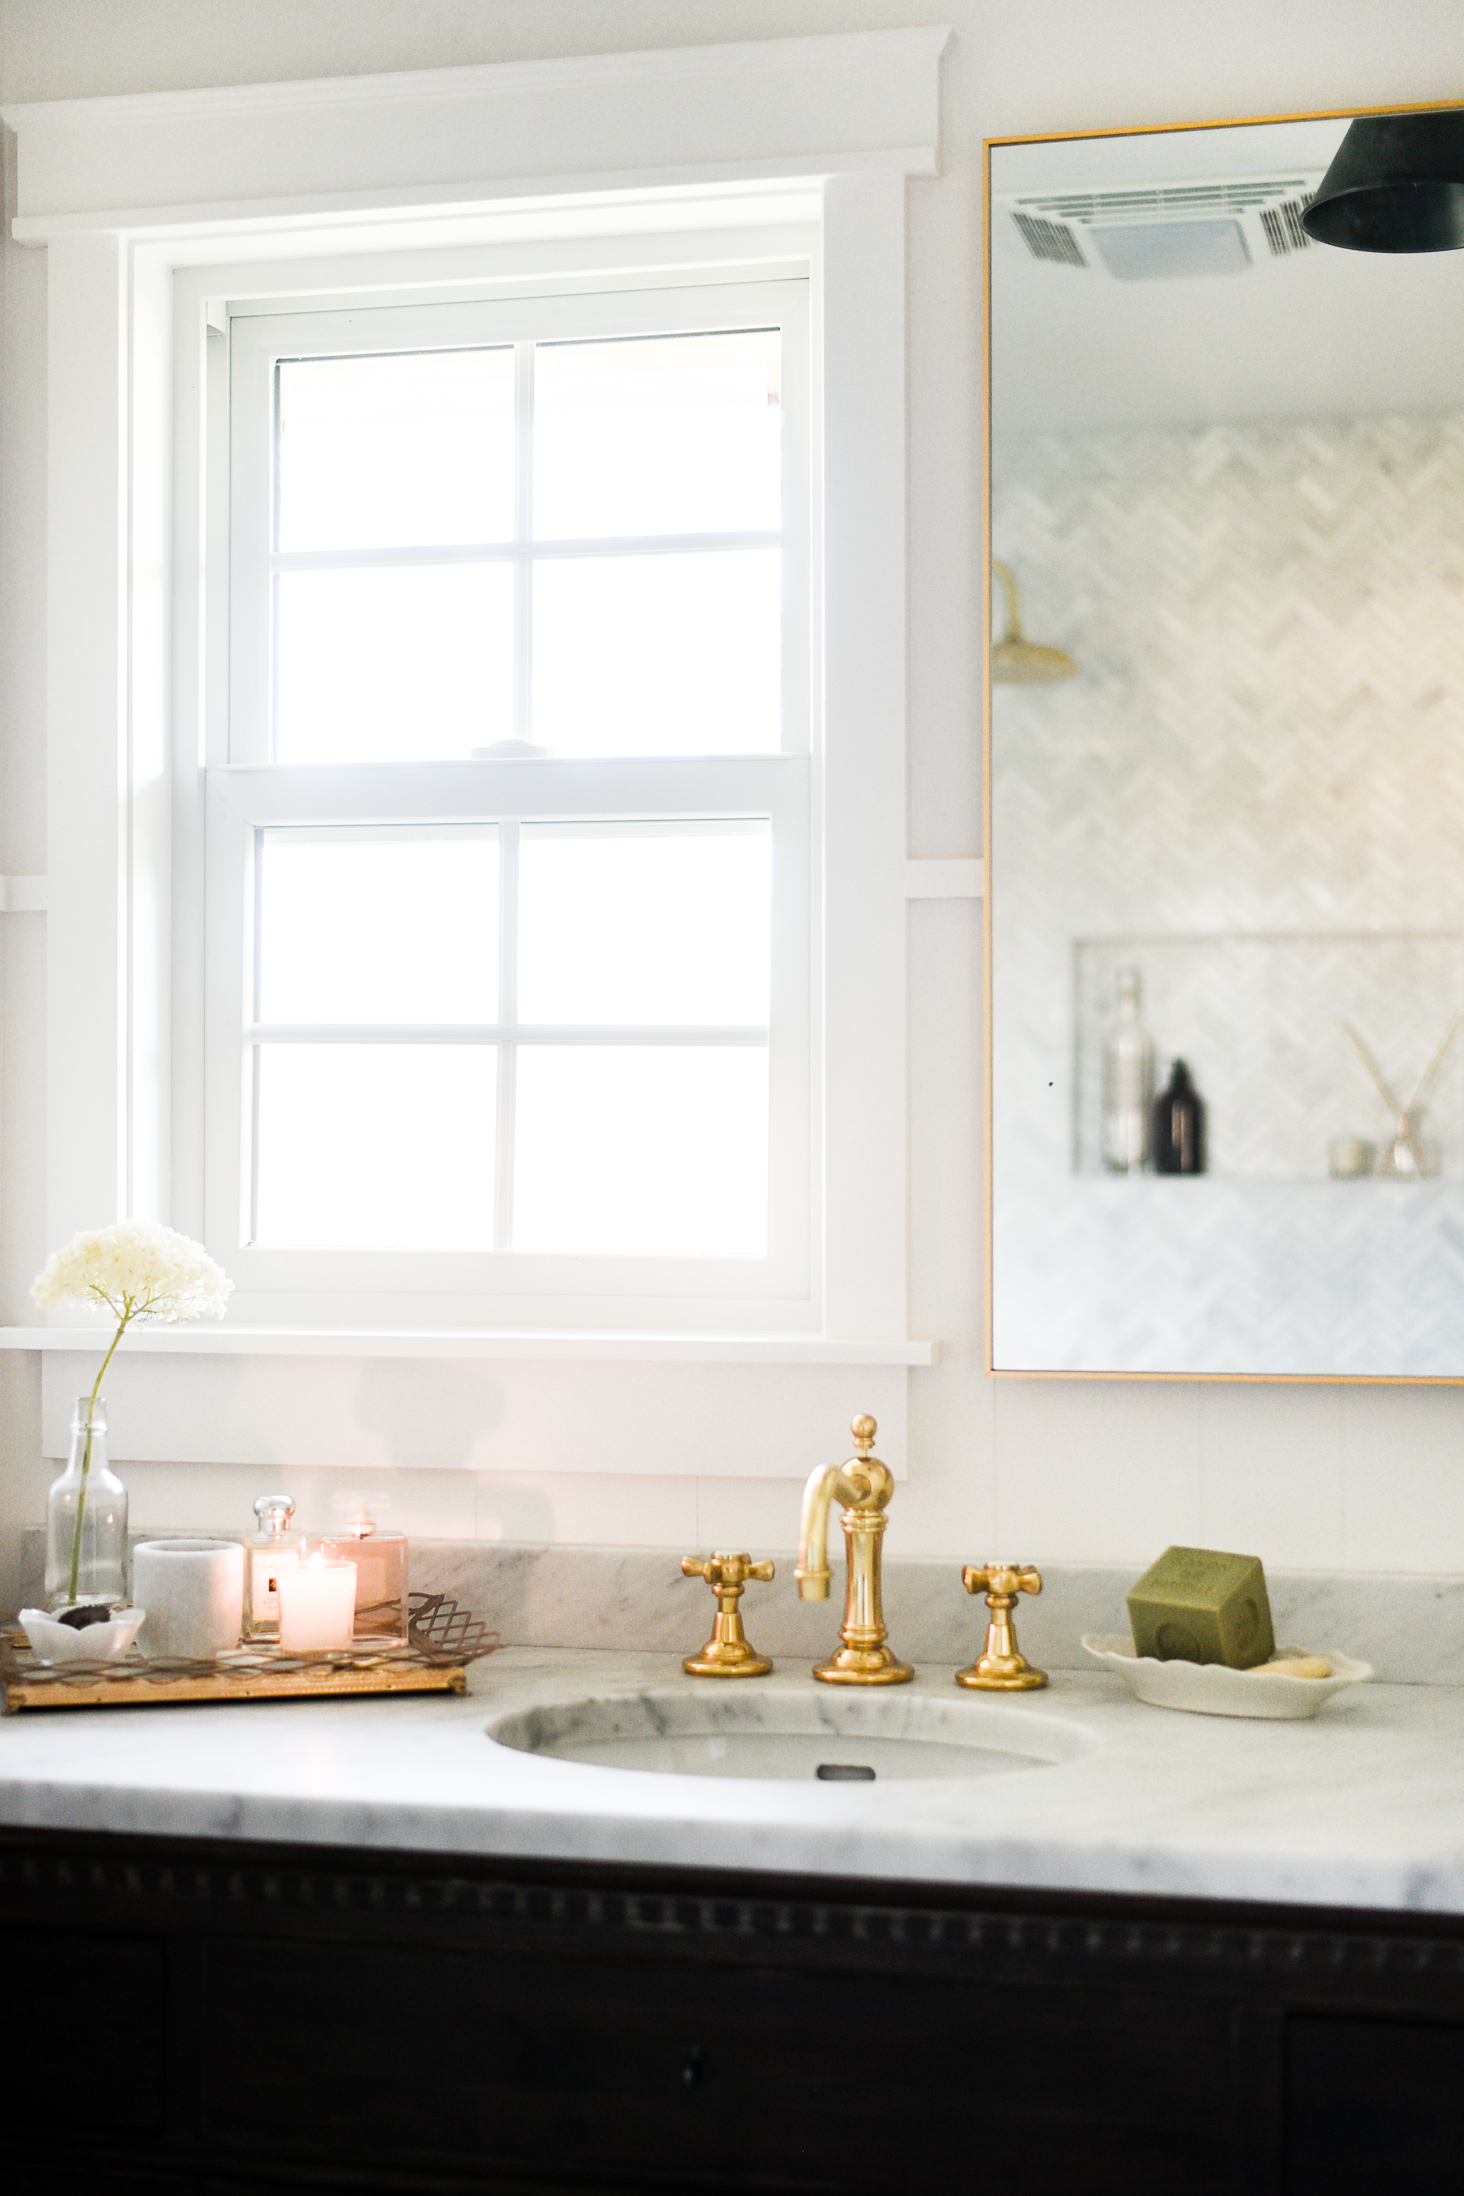 Take a peek into this beautiful guest bathroom remodel full of marble, brass, and pretty details!